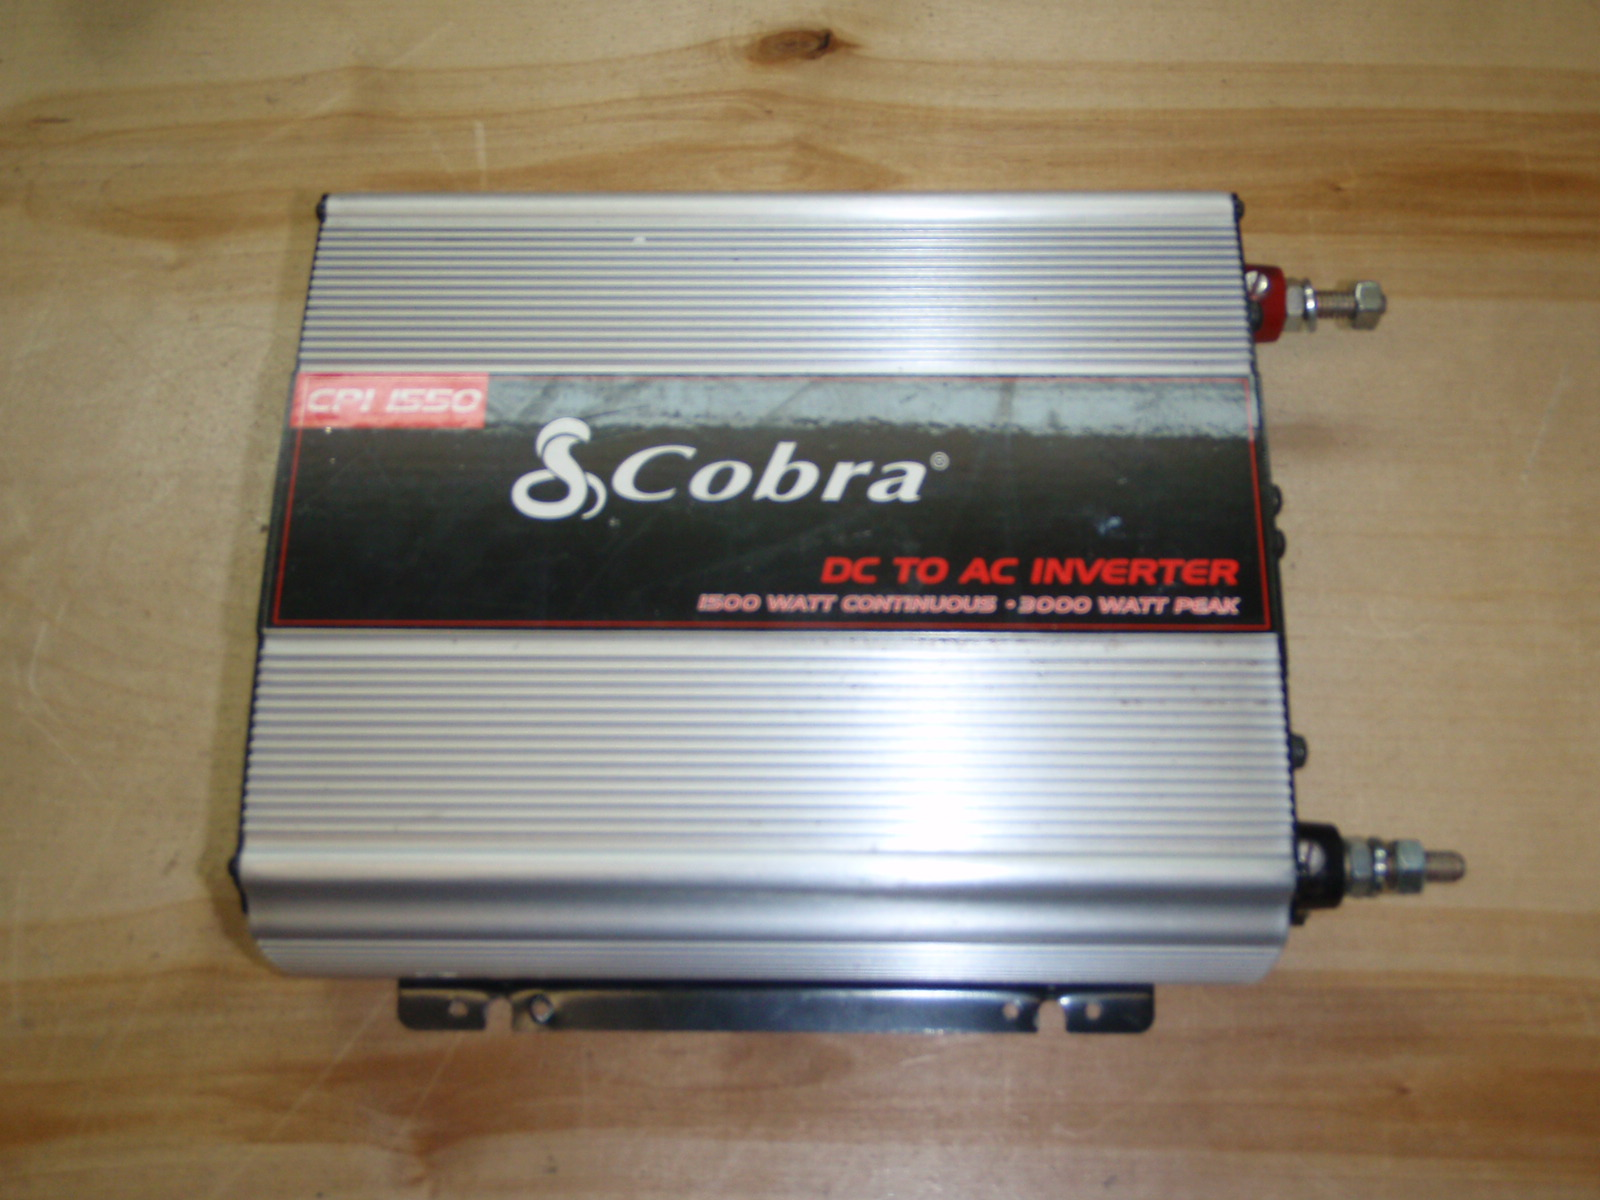 Cobra Inverter top